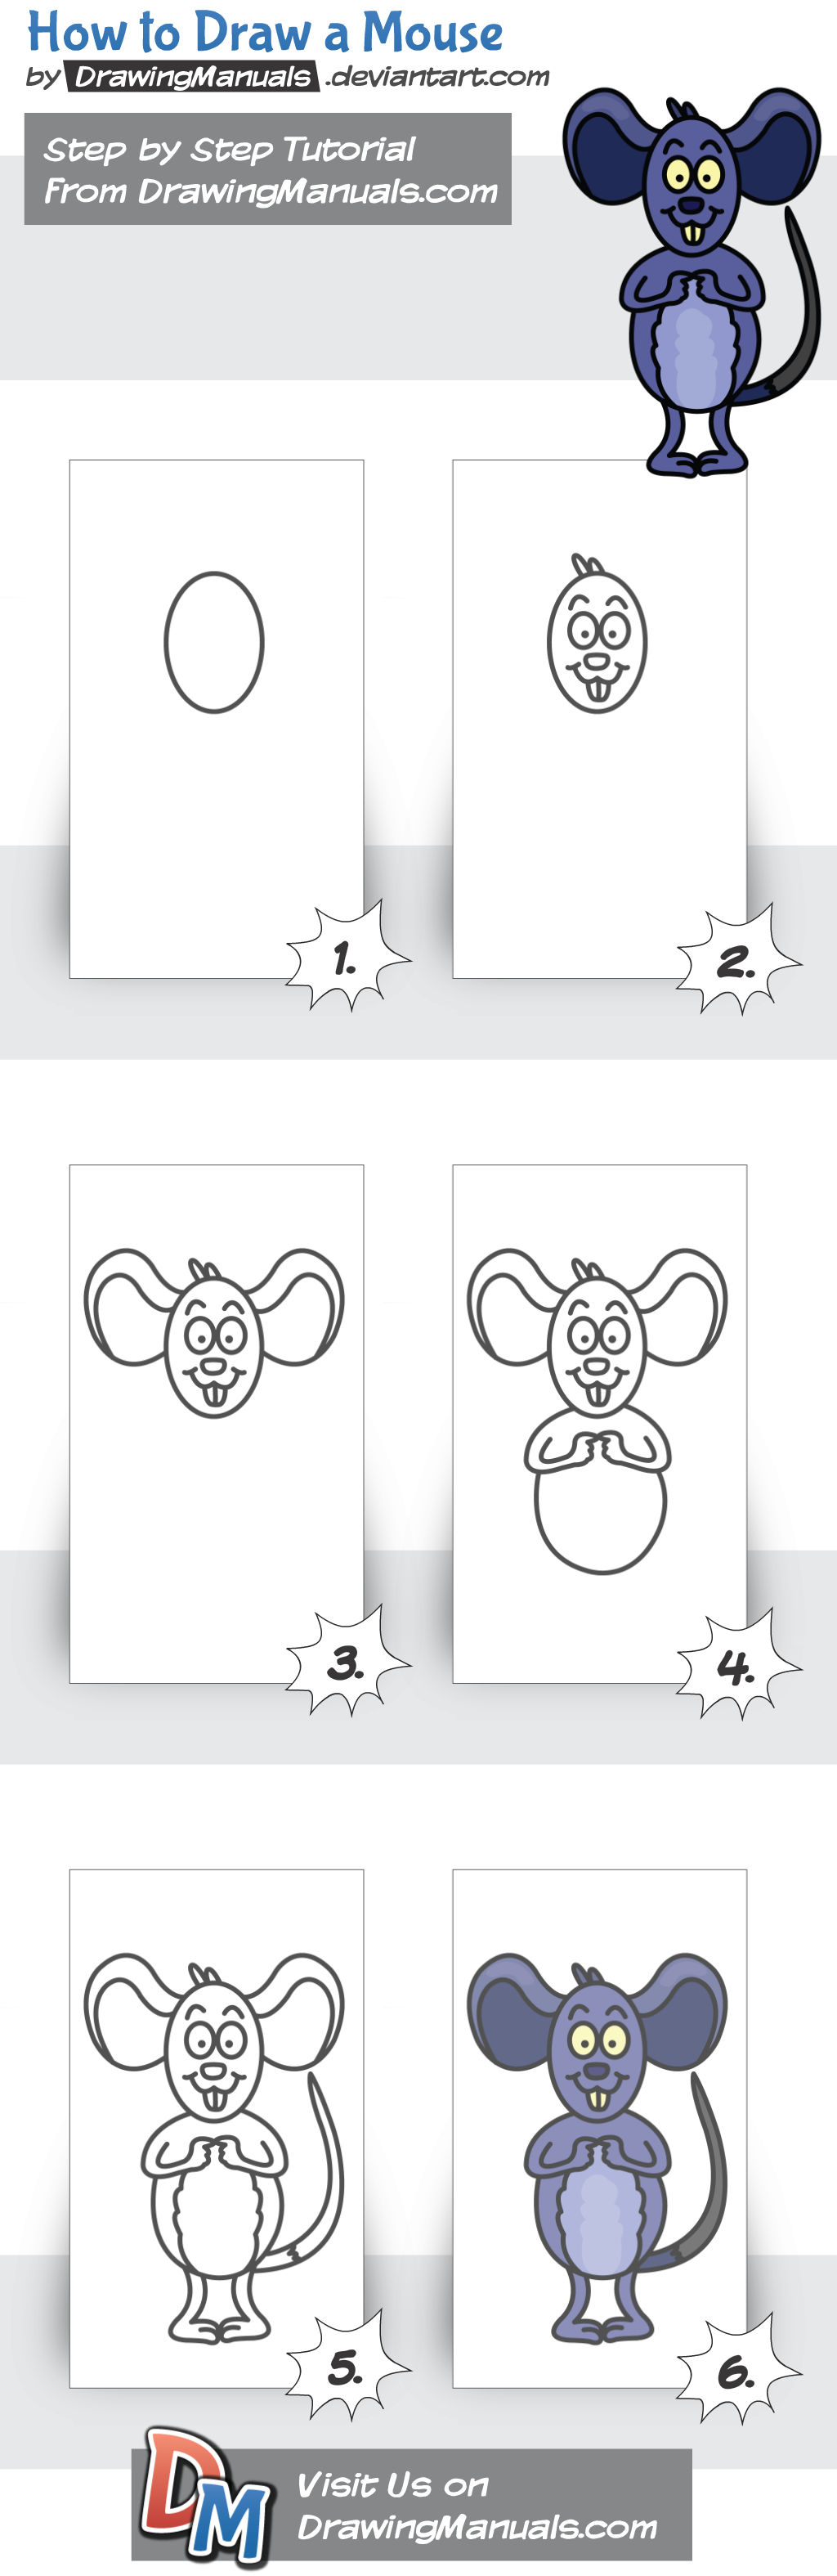 How to Draw a Mouse Step-by-Step https://play.google.com/store/apps/details?id=com.aku.drawissimo https://itunes.apple.com/app/id1098056720